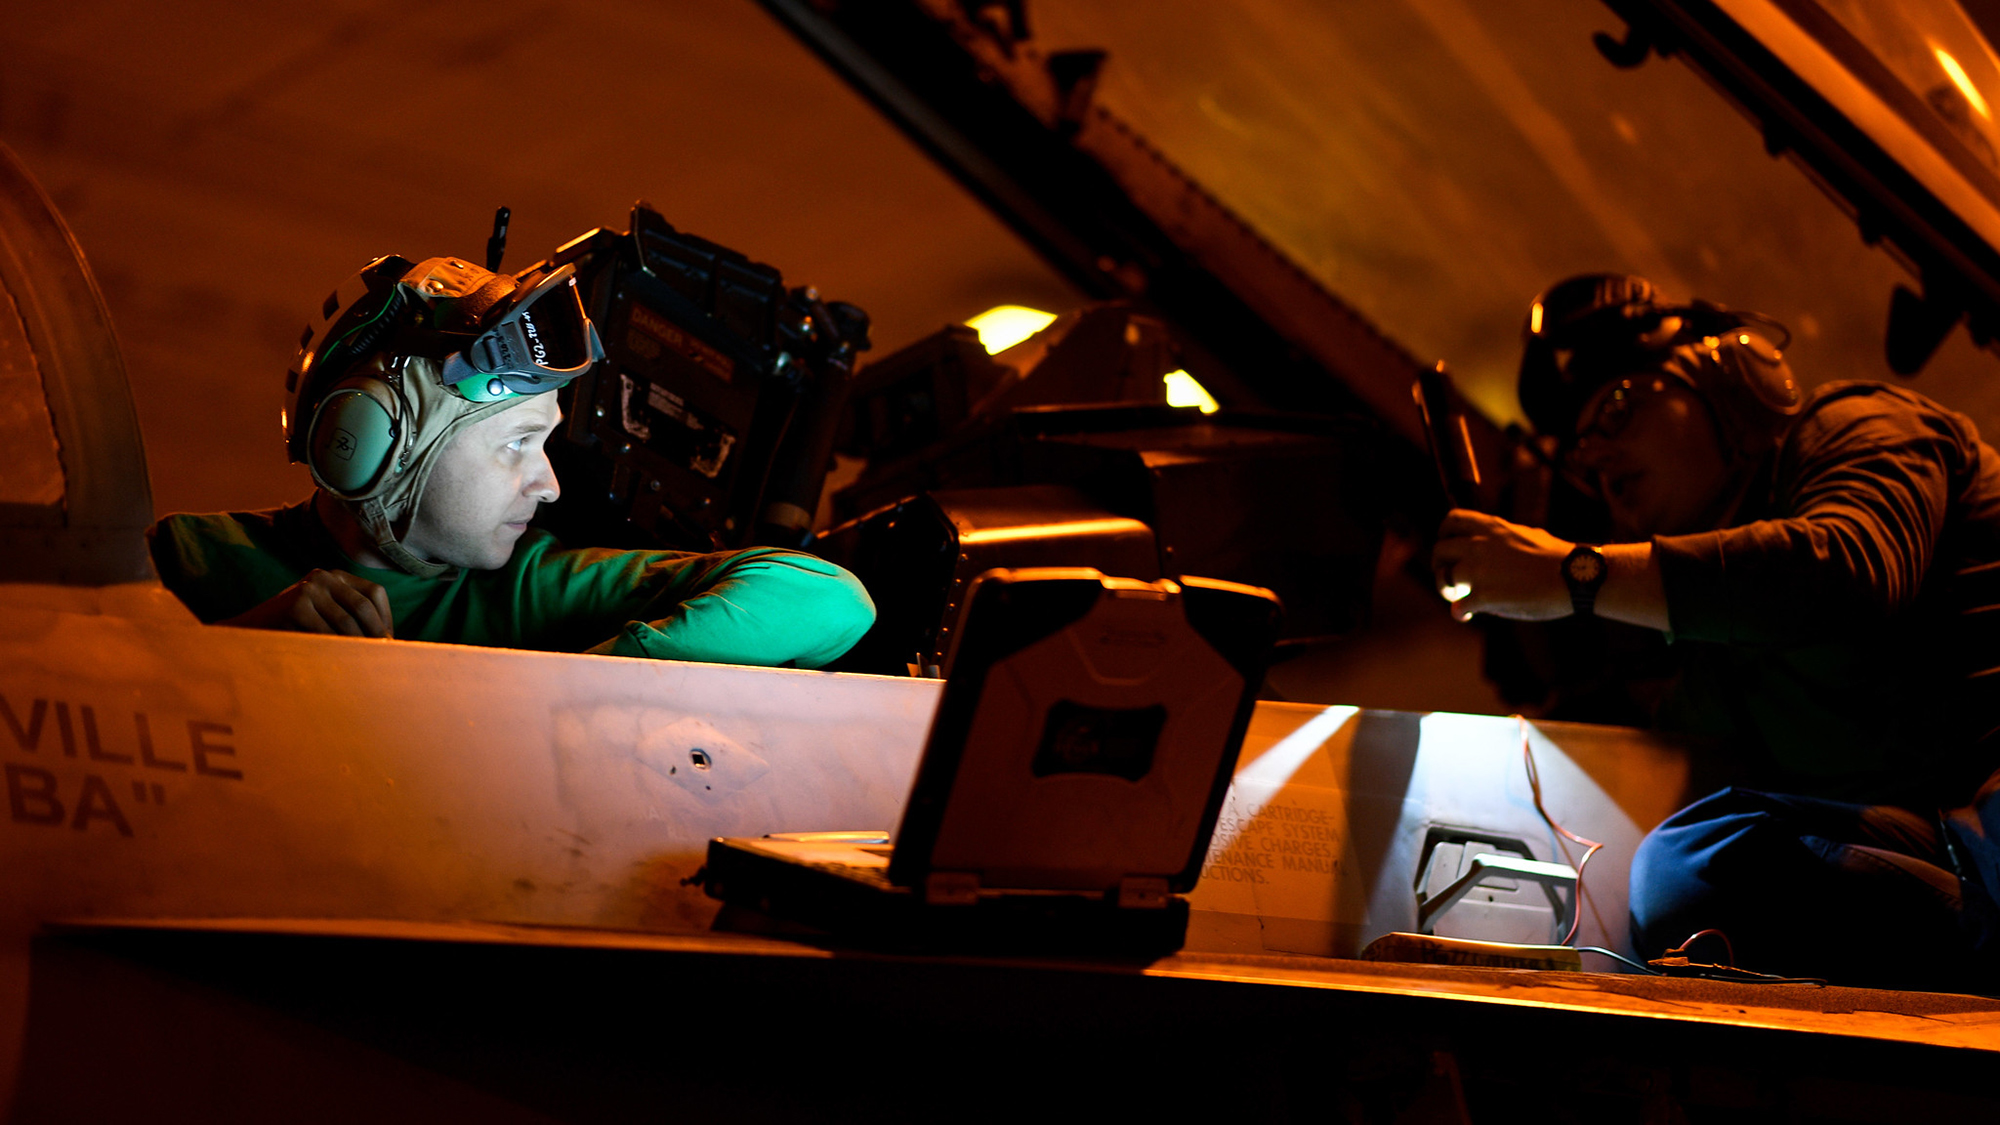 Aviation Electrician's Mate 2nd Class Trevor Brewster, left, and Aviation Electrician's Mate 3rd Class Caleb Byers run diagnostics on the weapons system of an F/A-18F Super Hornet on Nov. 20, 2019, in the hangar bay of the aircraft carrier USS Theodore Roosevelt (CVN 71) in the Pacific Ocean. (Mass Communication Specialist Seaman Olympia O. McCoy/Navy)